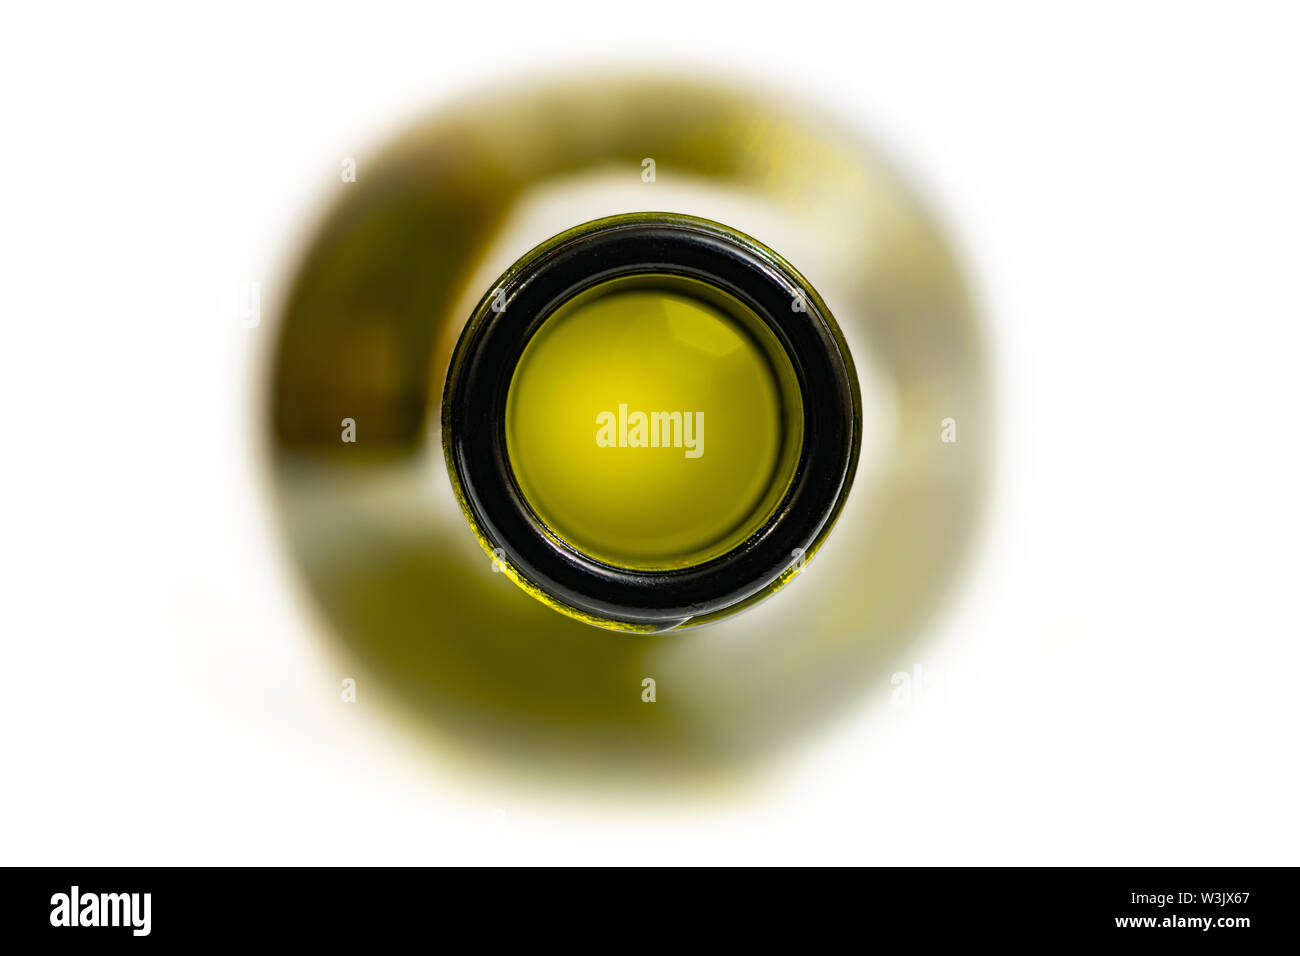 Bottleneck, macro, close up. Neck of empty used bottle of wine or beer. Isolated for design. - Stock Image